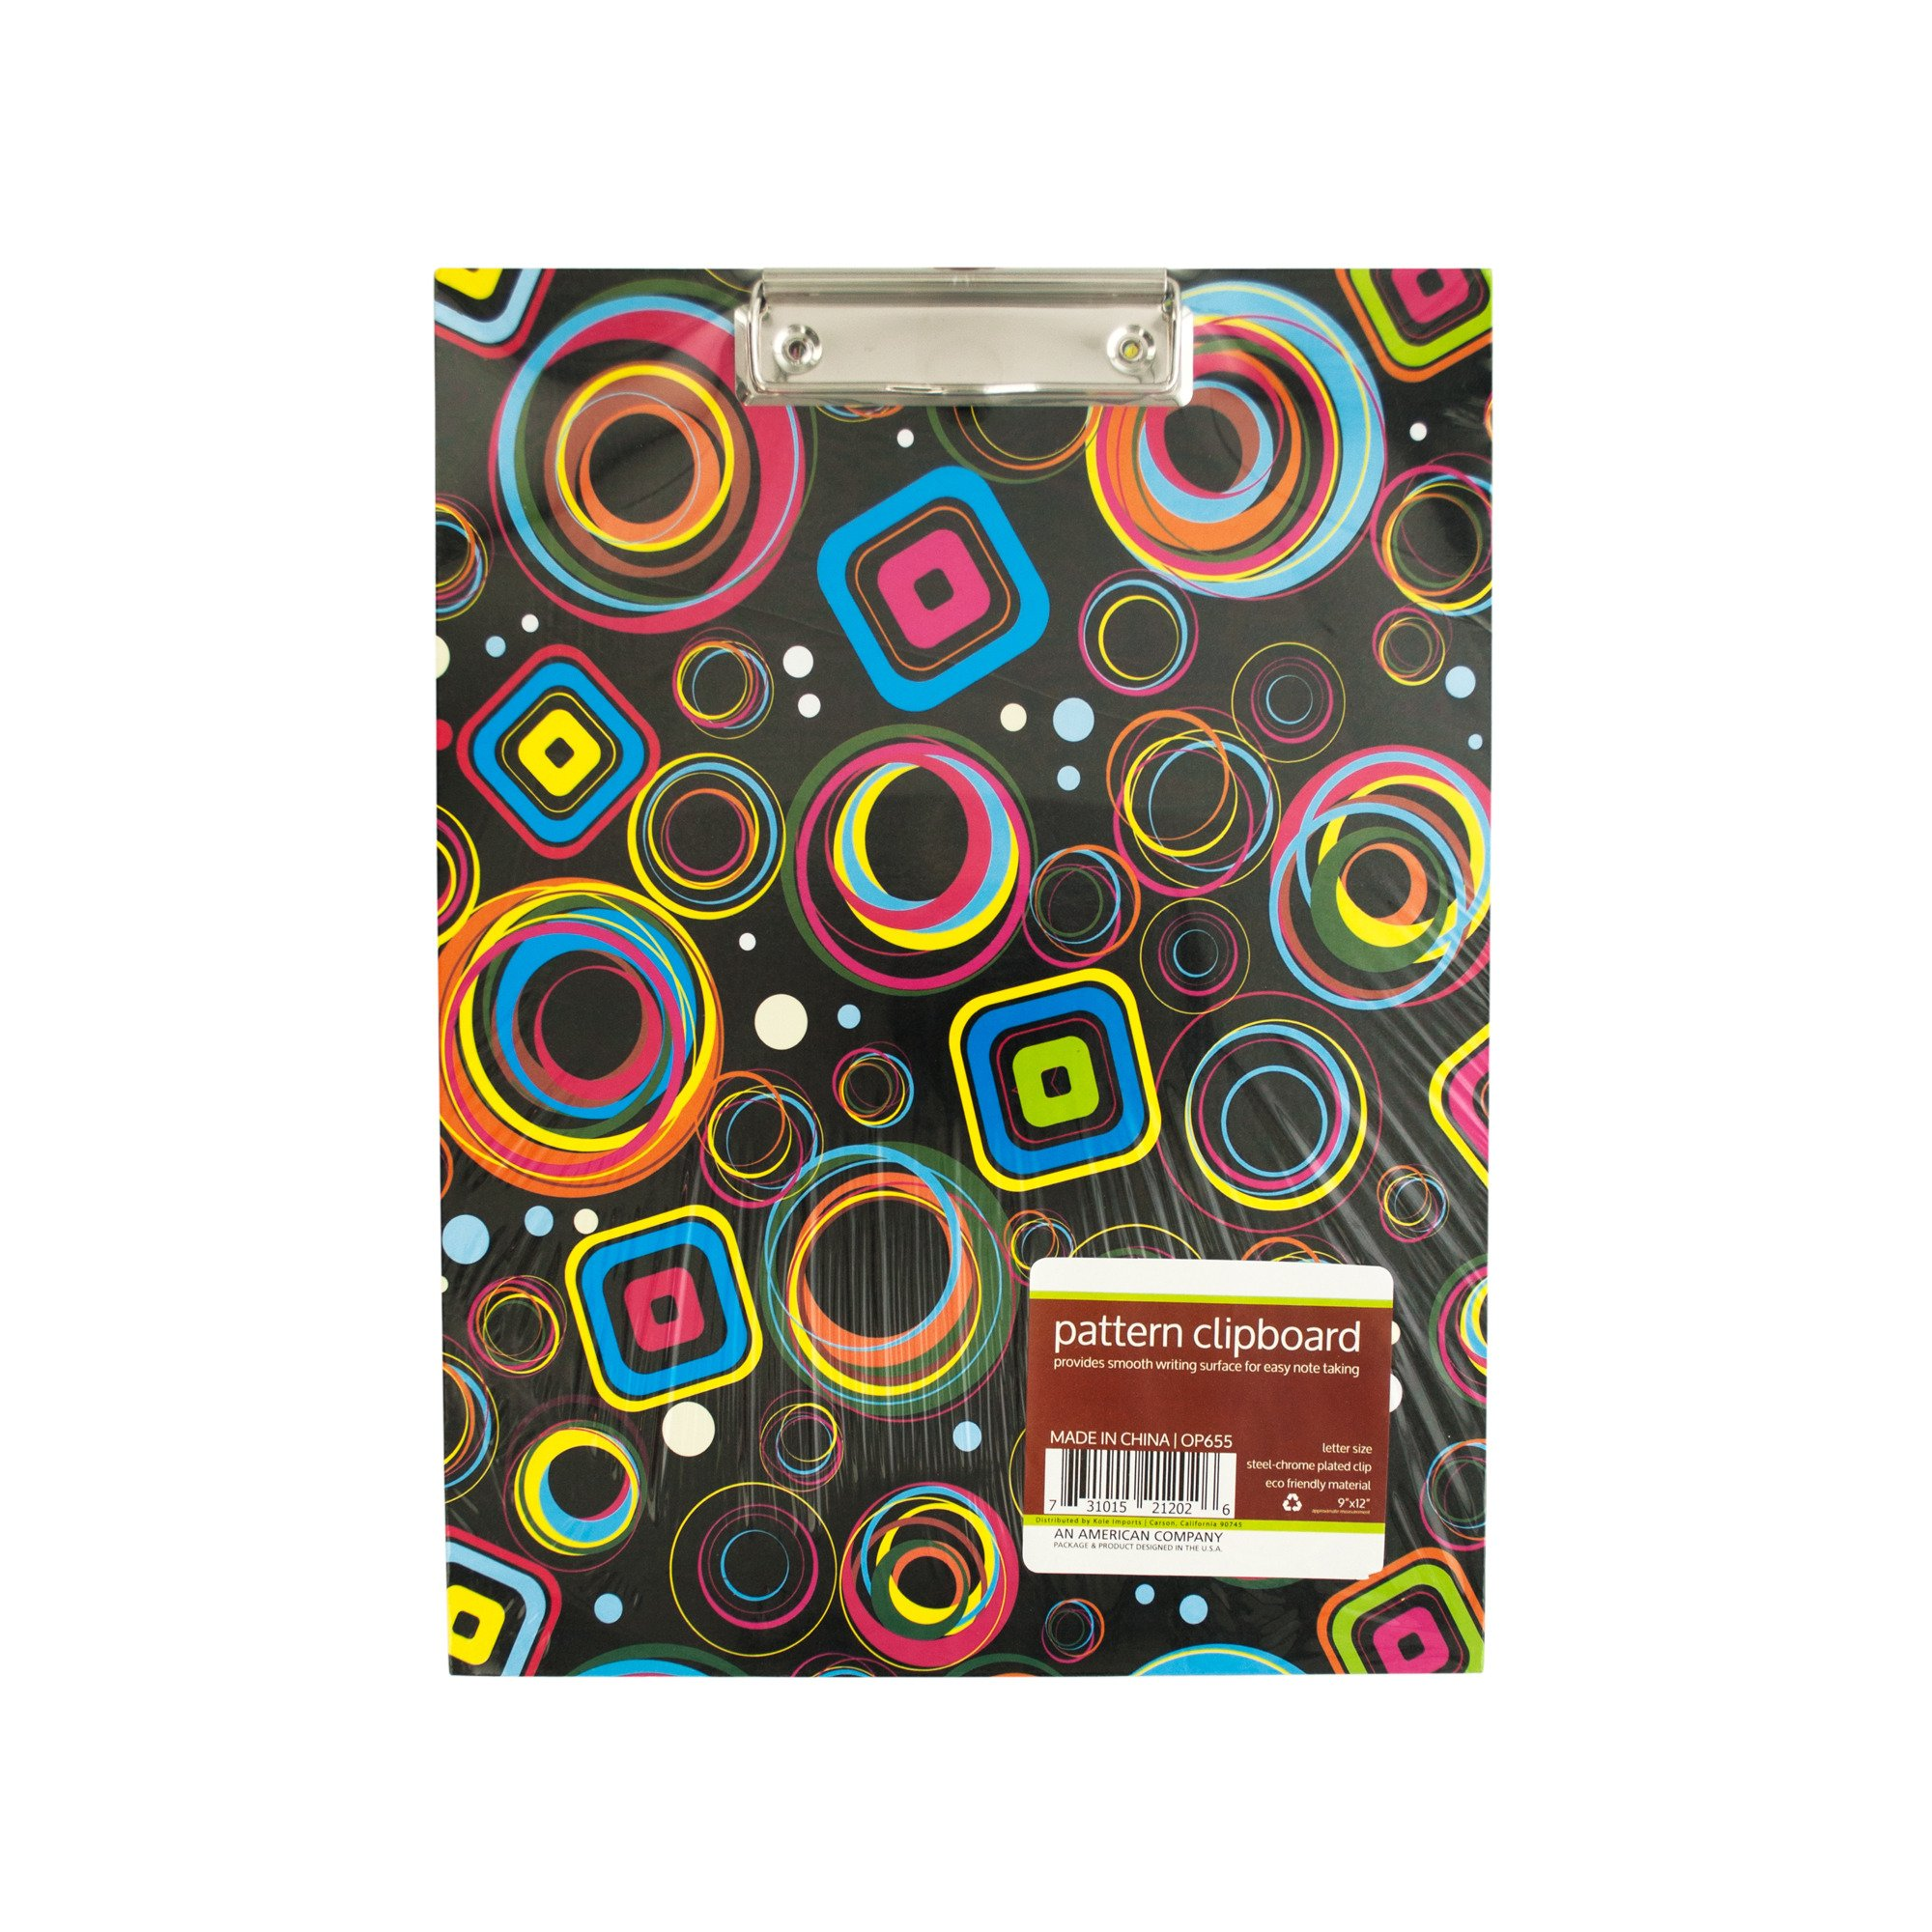 123-Wholesale - Set of 30 Pattern Clipboard with Steel-Chrome Plated Clip - School & Office Supplies Clipboards